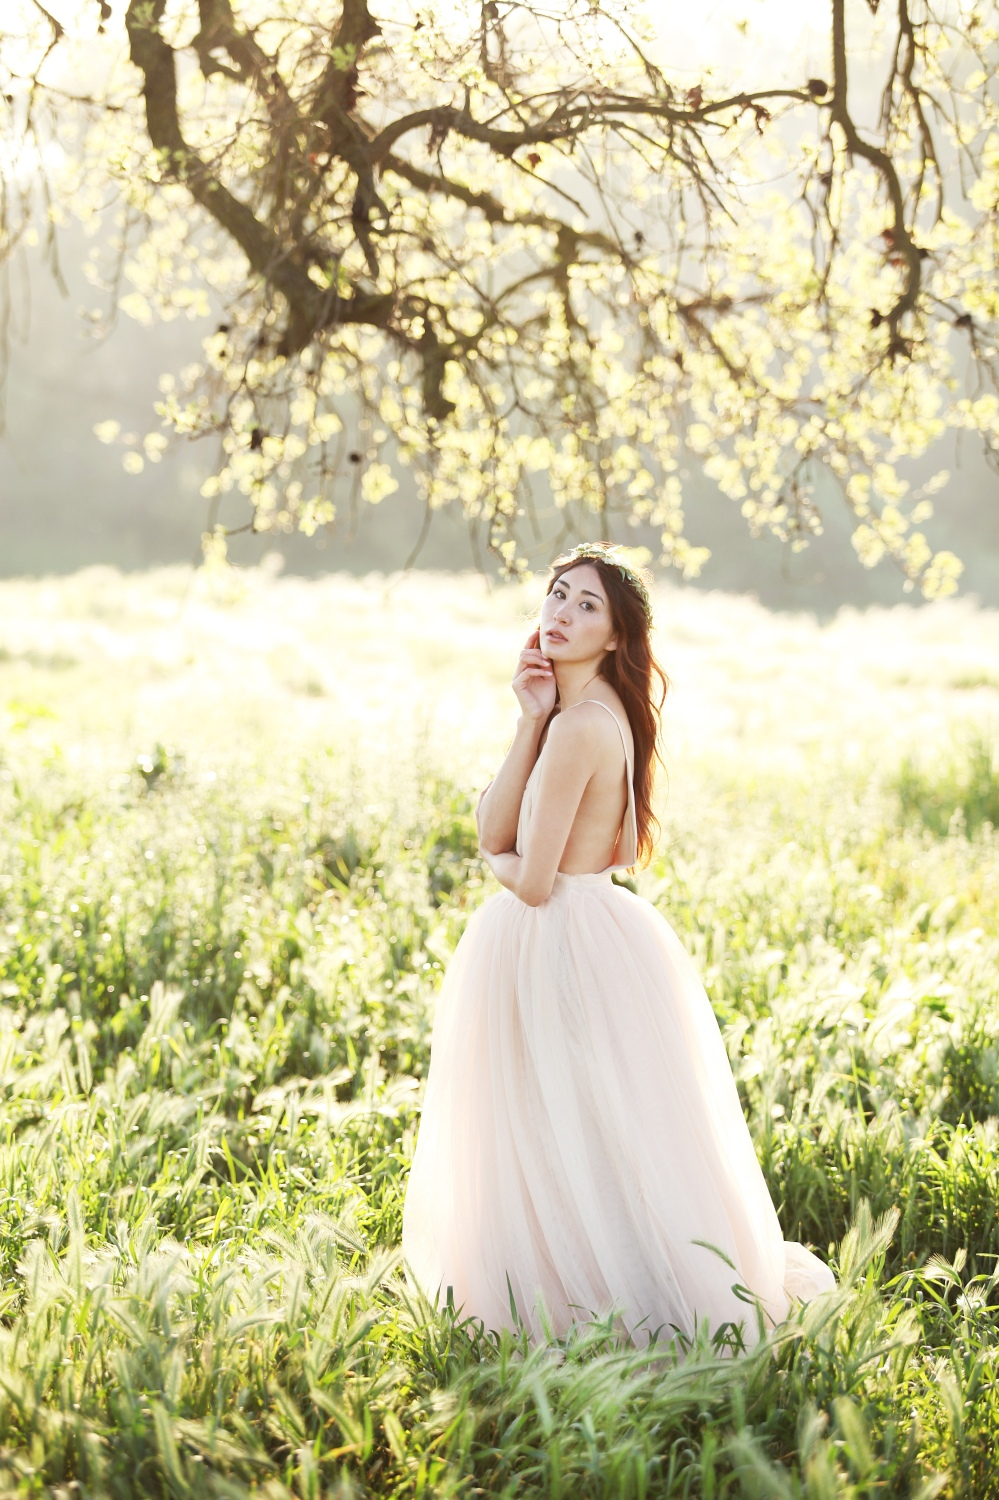 Flight of Fancy: Bohemian Bride Style in Alyssa Nicole Blush Tulle Gown and Floral Crown